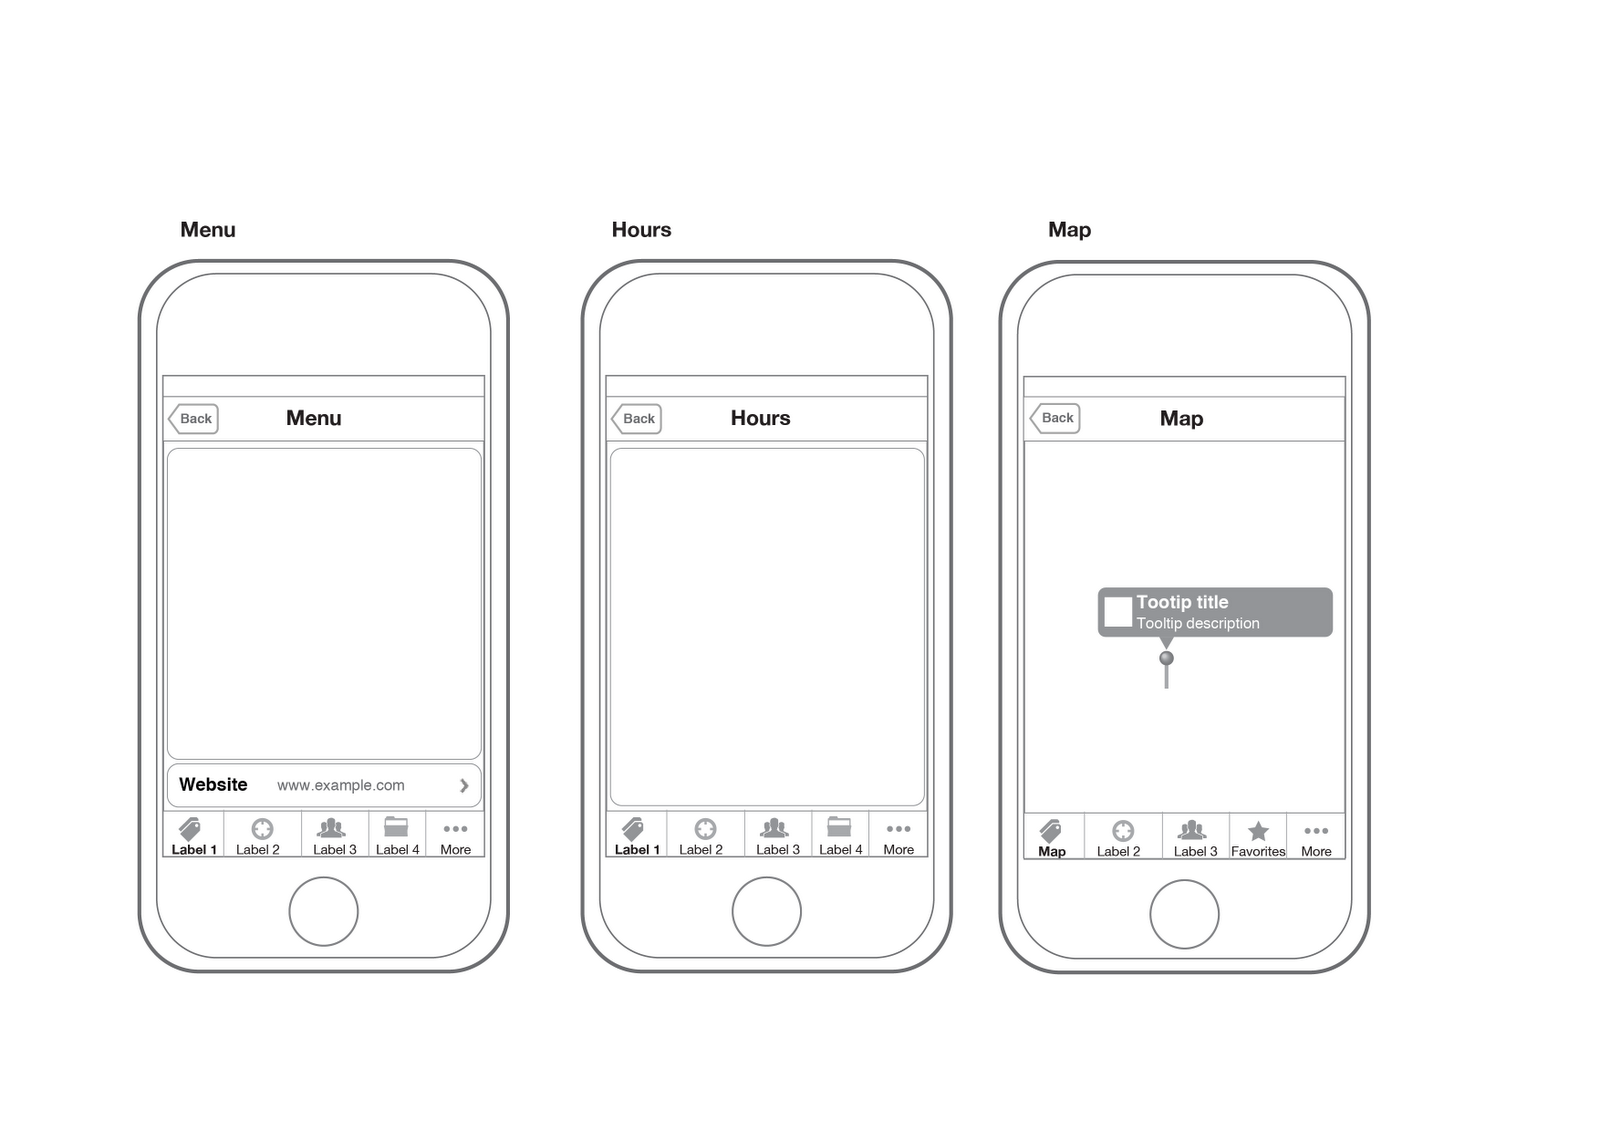 Iphone wireframe template illustrator a beginner s guide to iphone wireframe template illustrator wireframeapp stefania s interface design may 2012 pronofoot35fo Choice Image